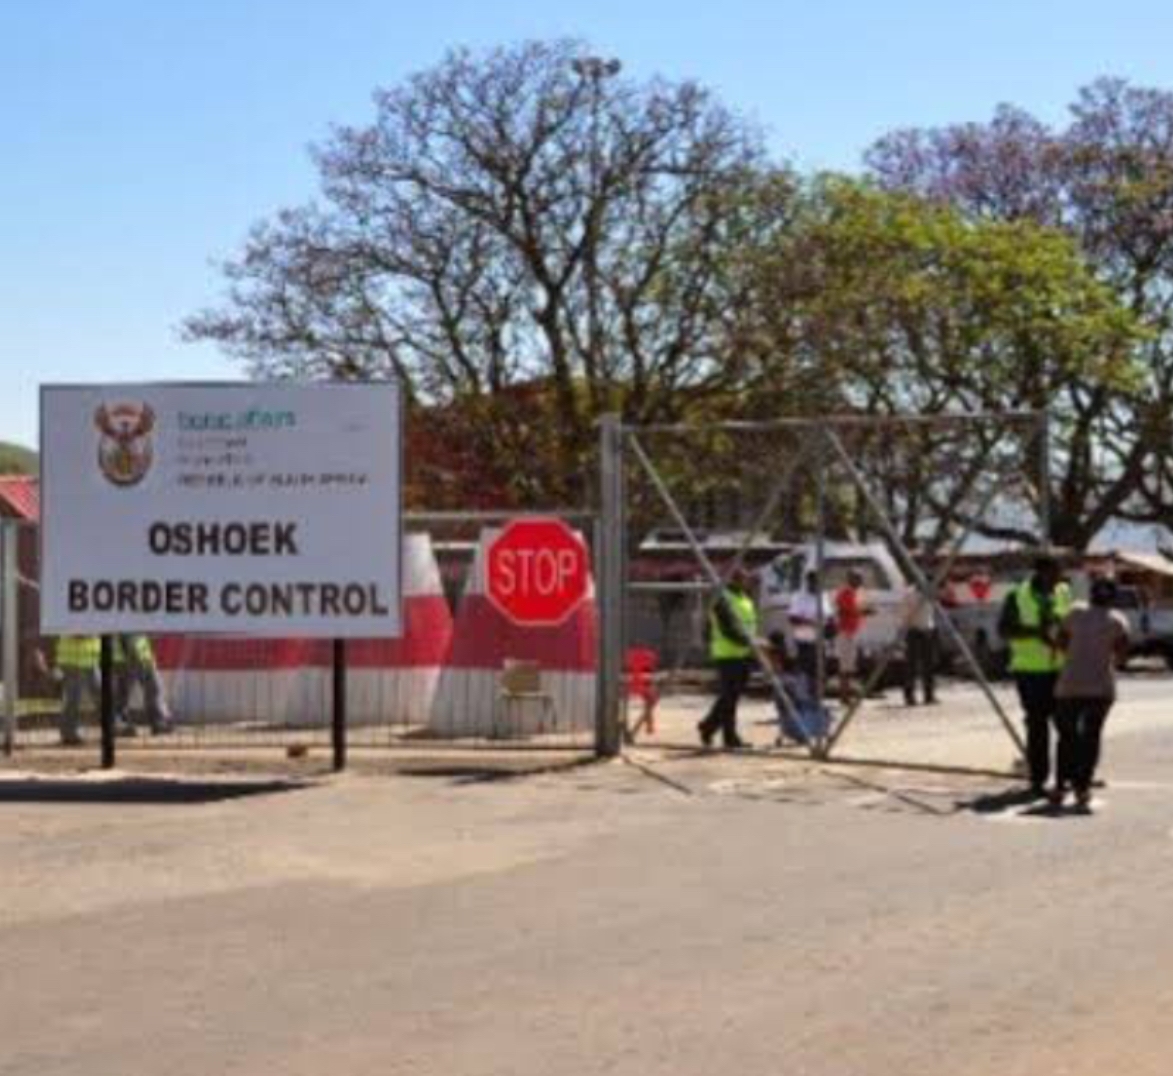 Eswatini Health Ministry new guidelines: No COVI-19 tests for daily cross-border students, truck drivers